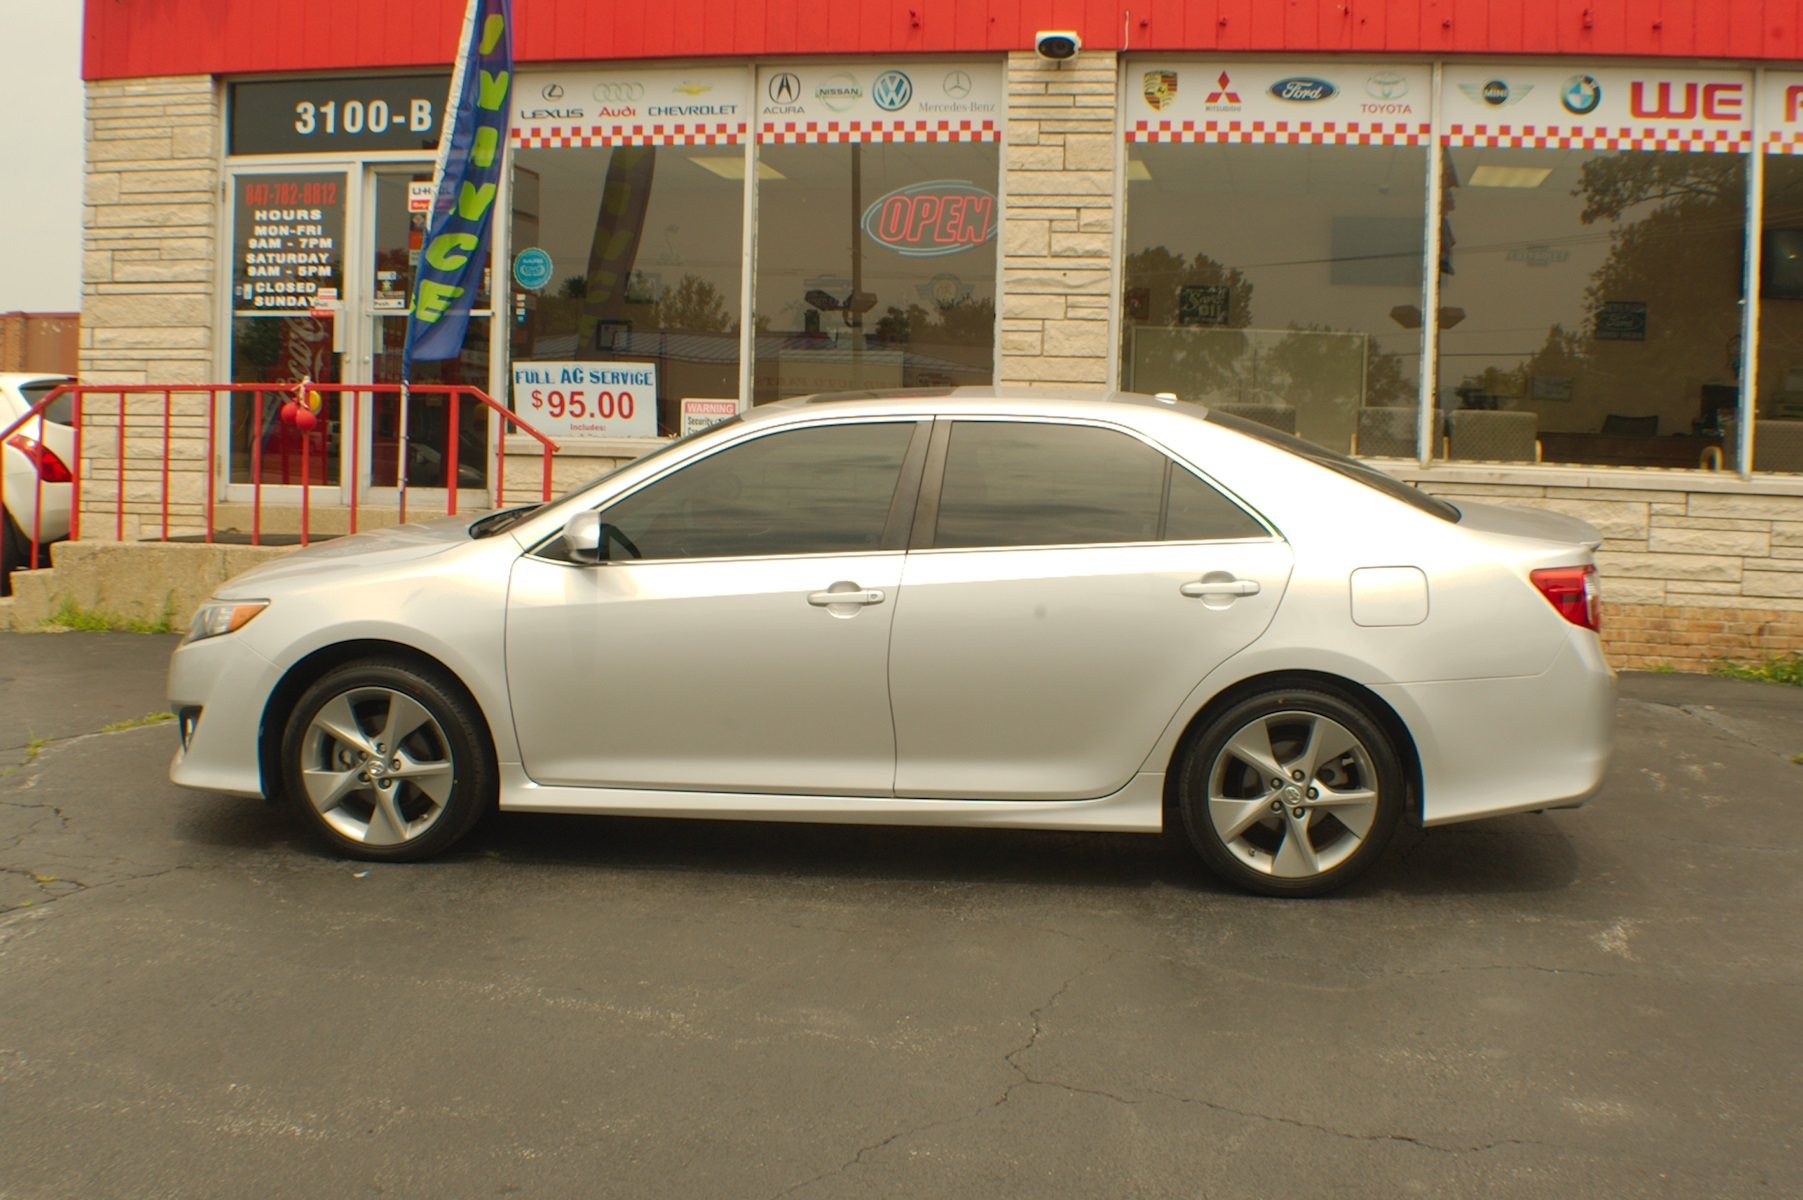 2012 Toyota Camry SE Silver Sedan used Car Sale Bannockburn Barrington Beach Park